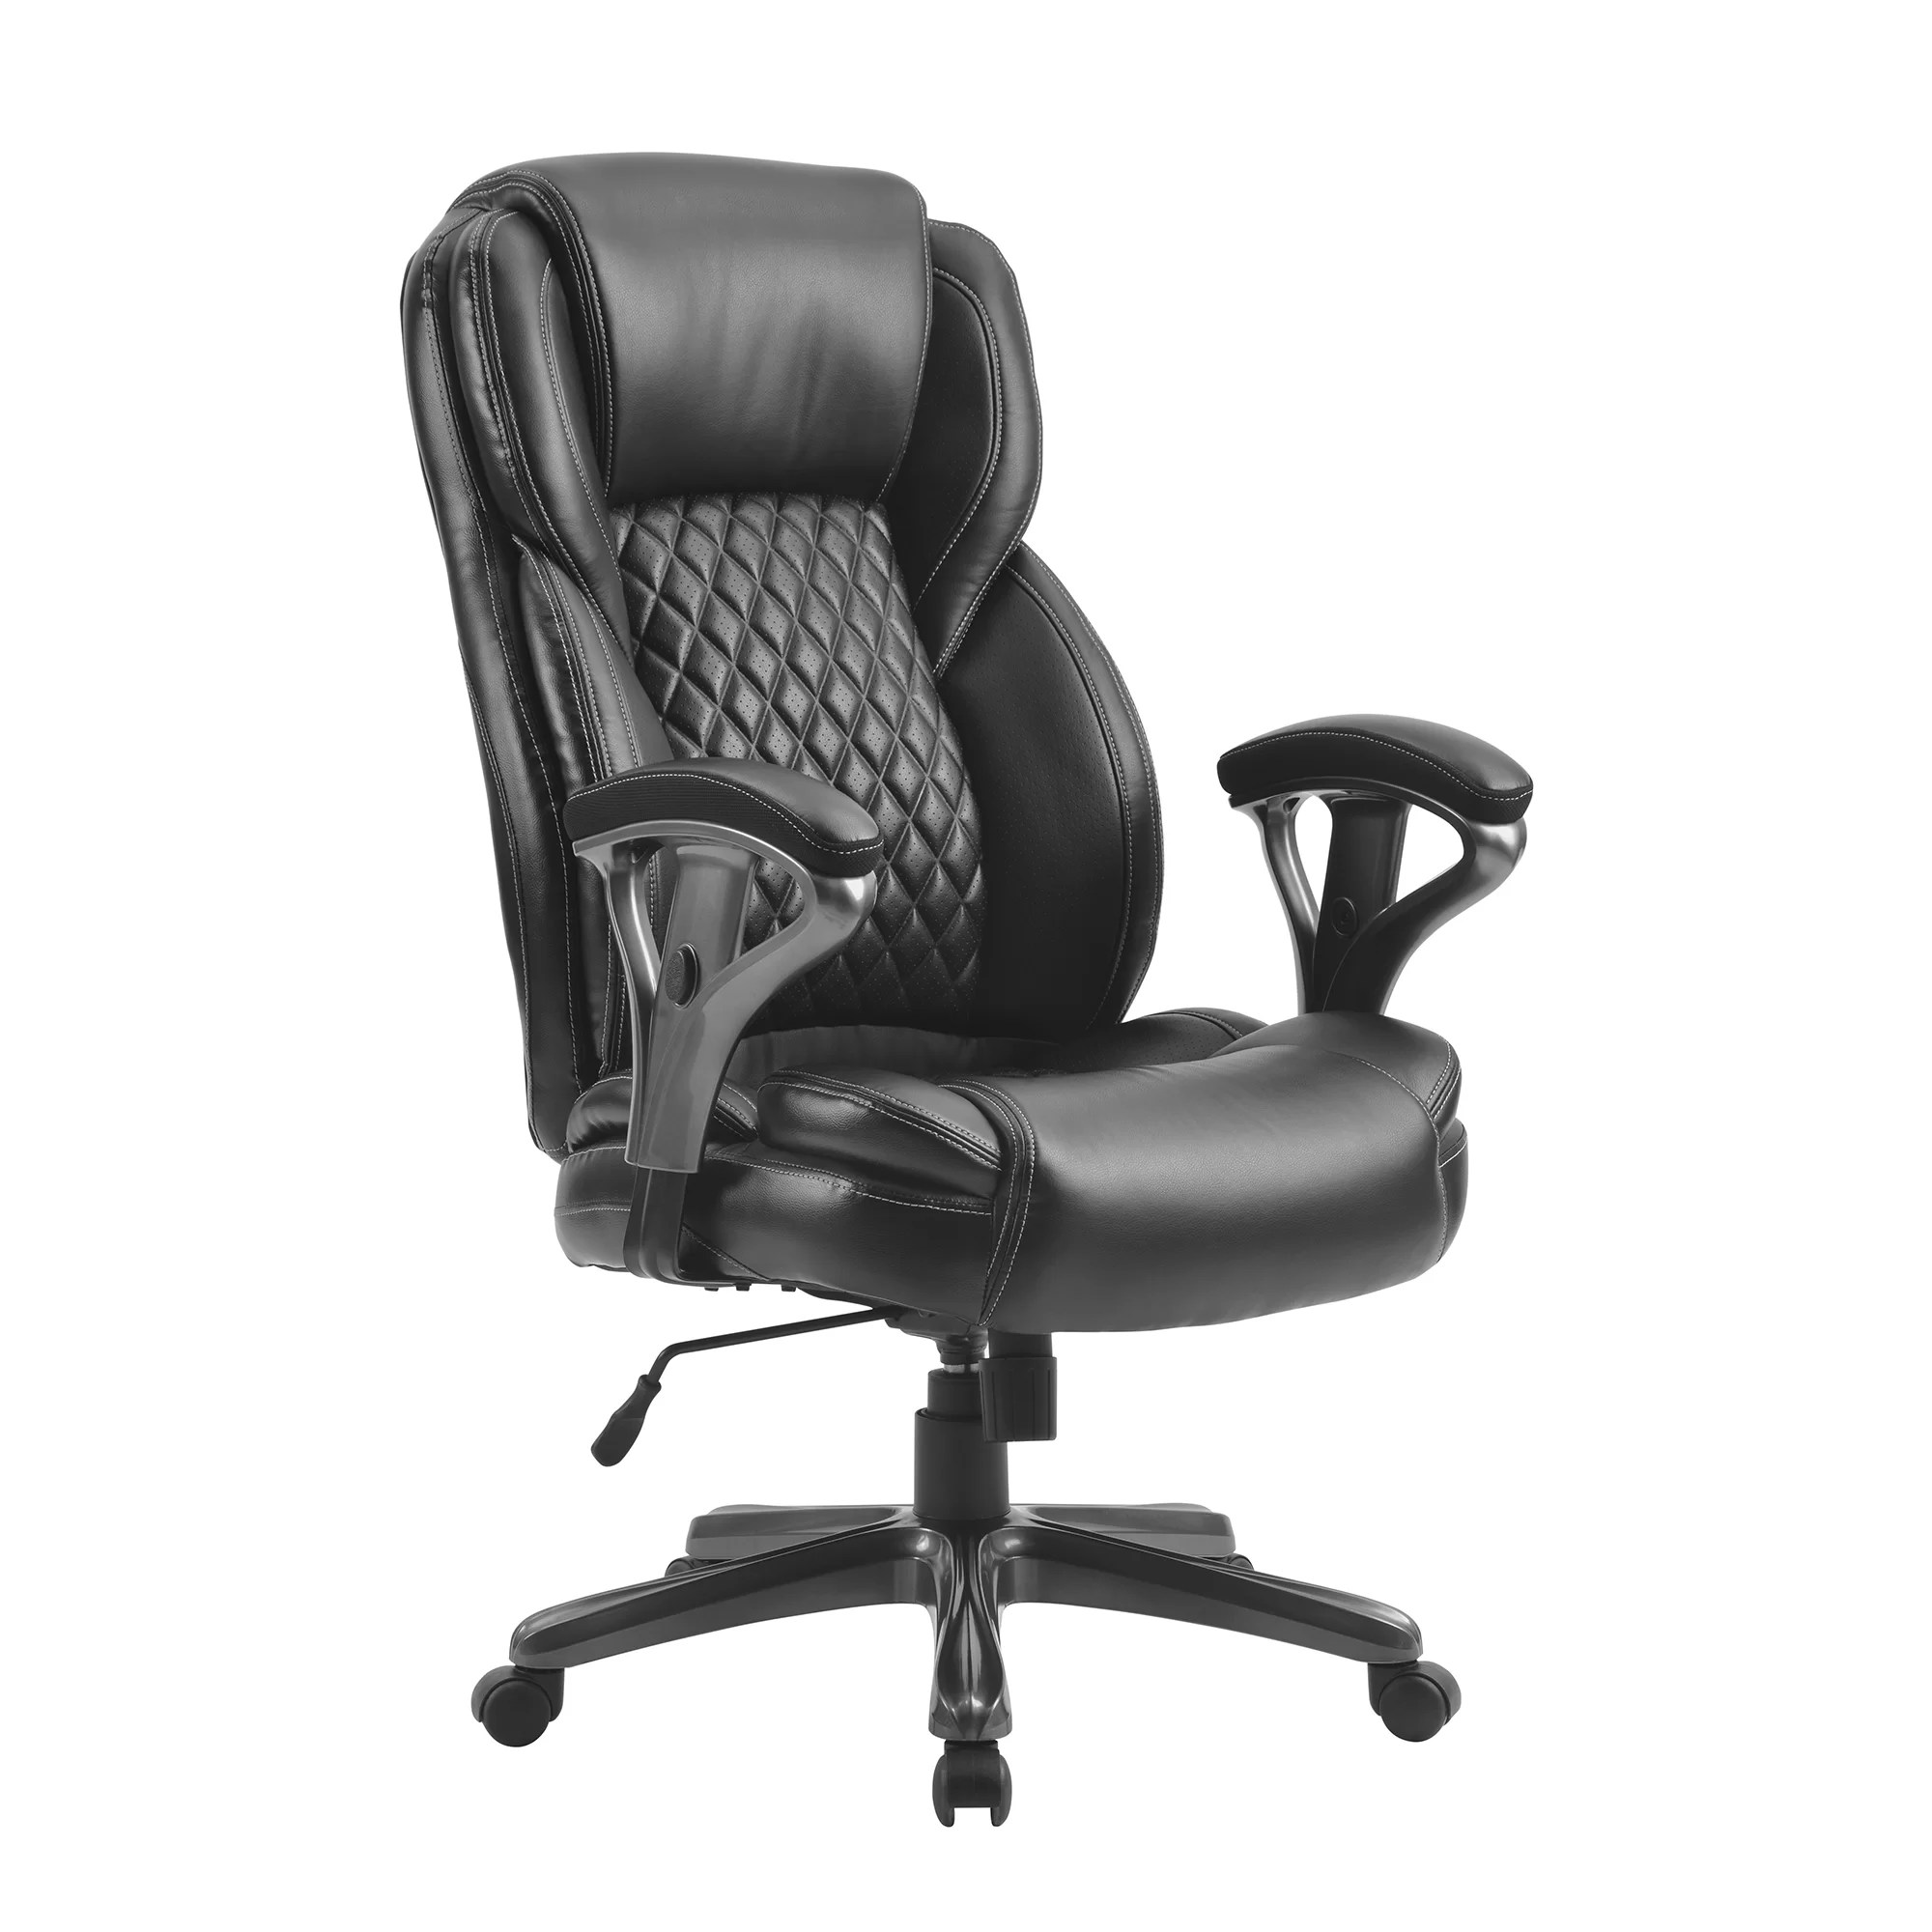 Red Barrel Studio Home Office Large And Tall Pu Leather Office Chair Ergonomic Computer Chair High Back Pu Executive Chair Black Wayfair Ca